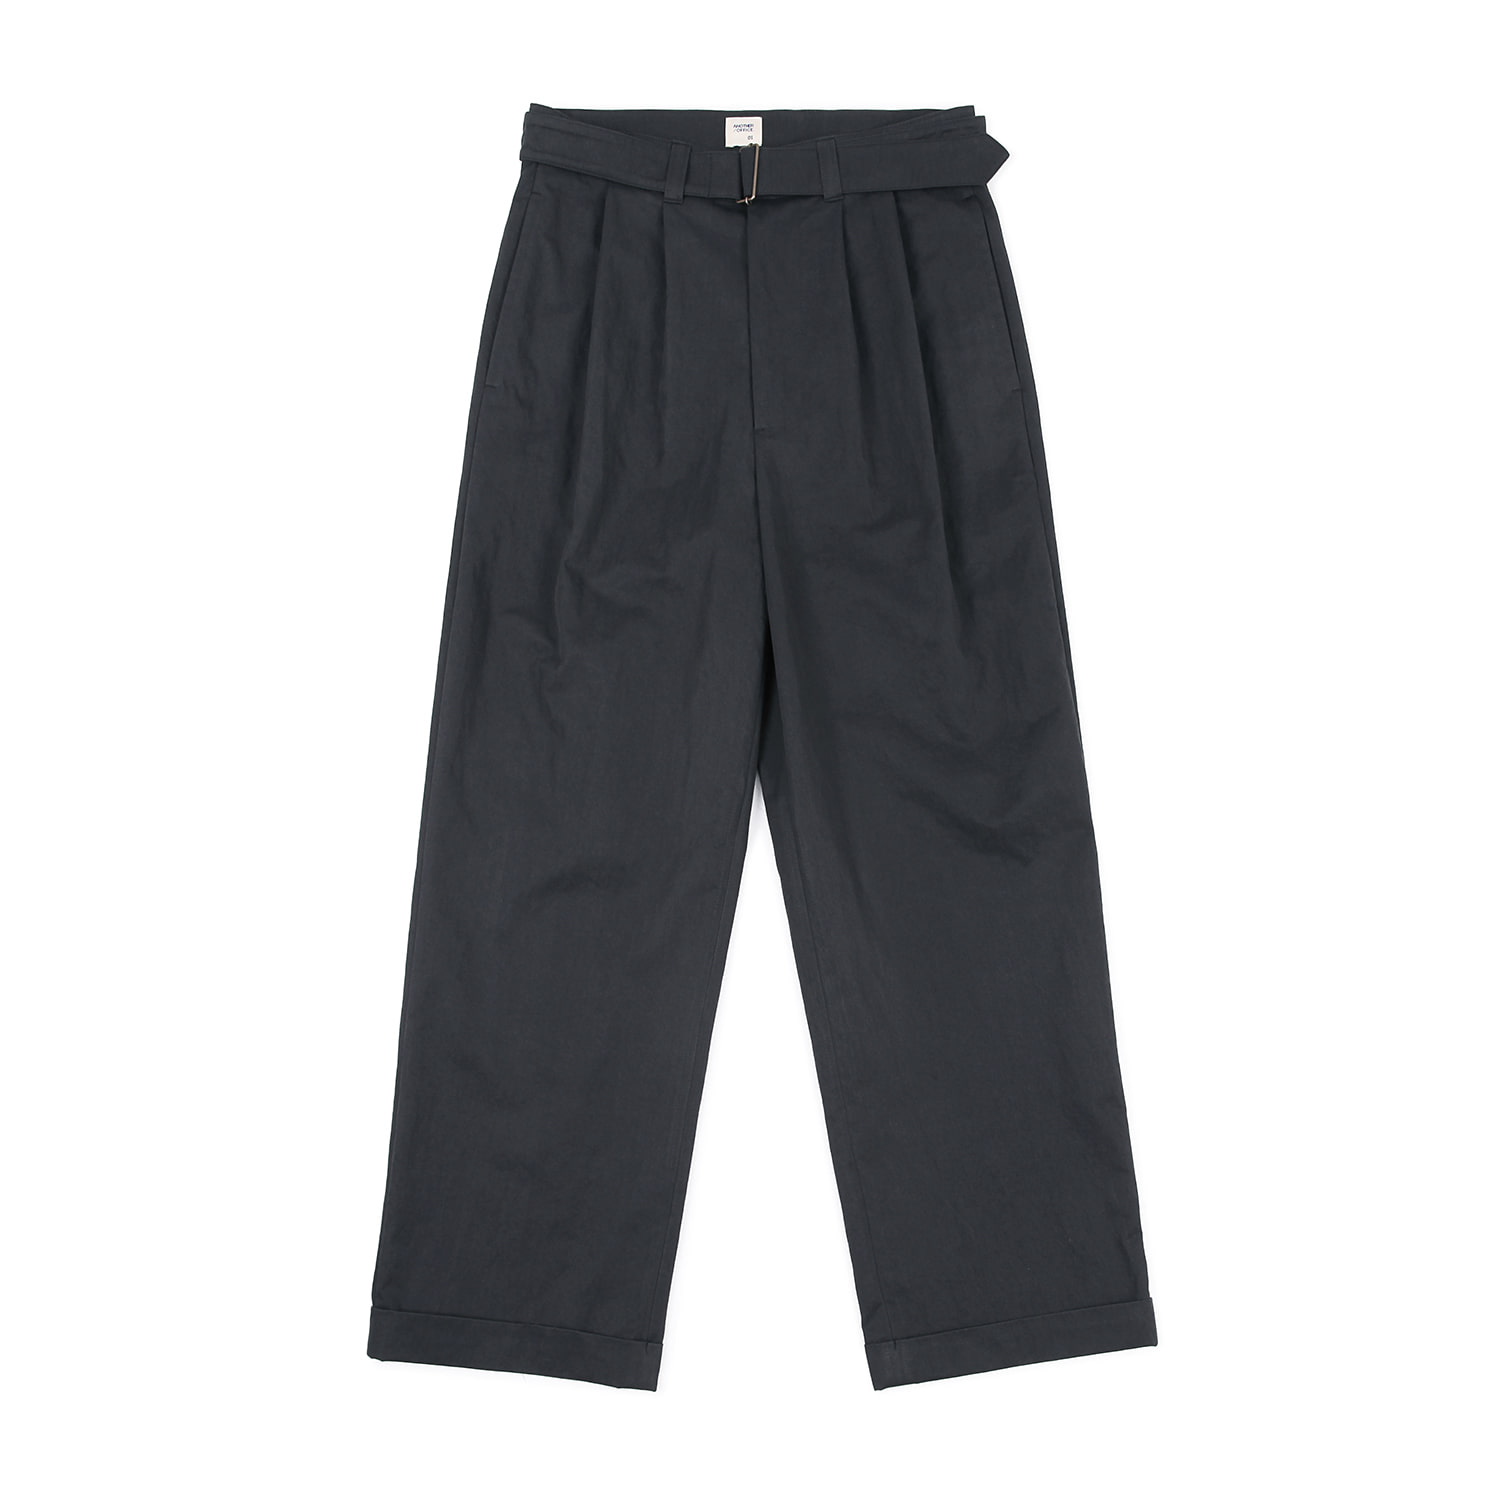 25%OFF_Hemingway Belted Turn-up Pants (Mid Night)